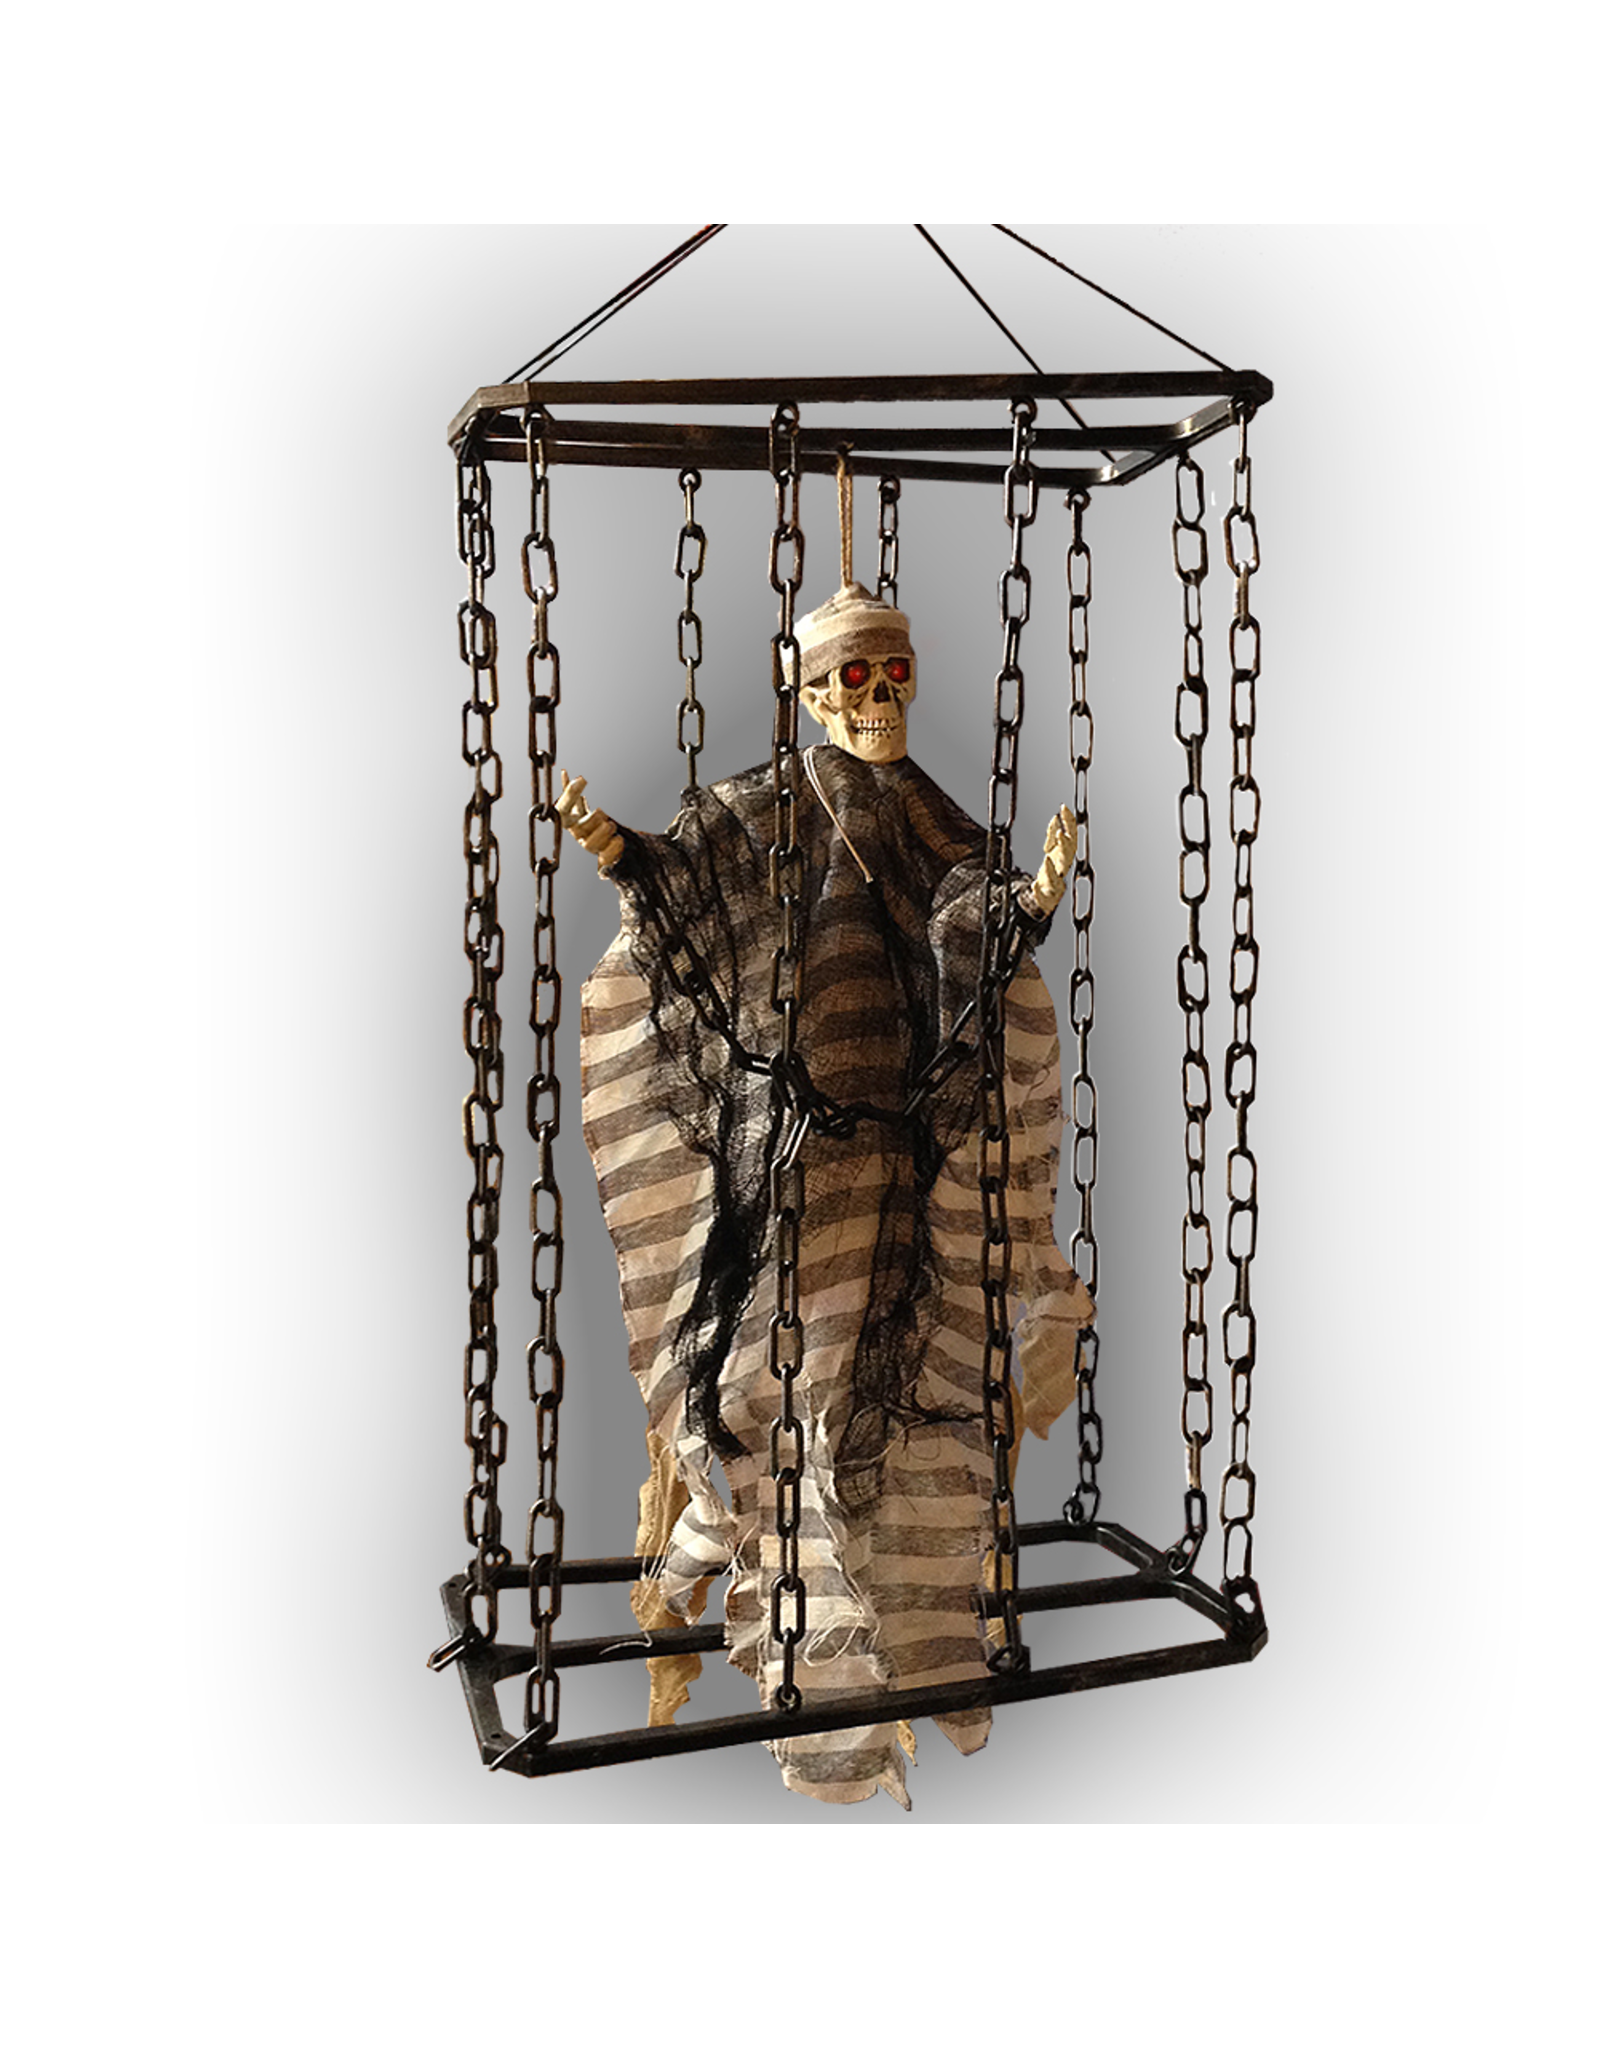 Darice Caged Shaking Prisoner 20 inch Hanging Halloween Decoration